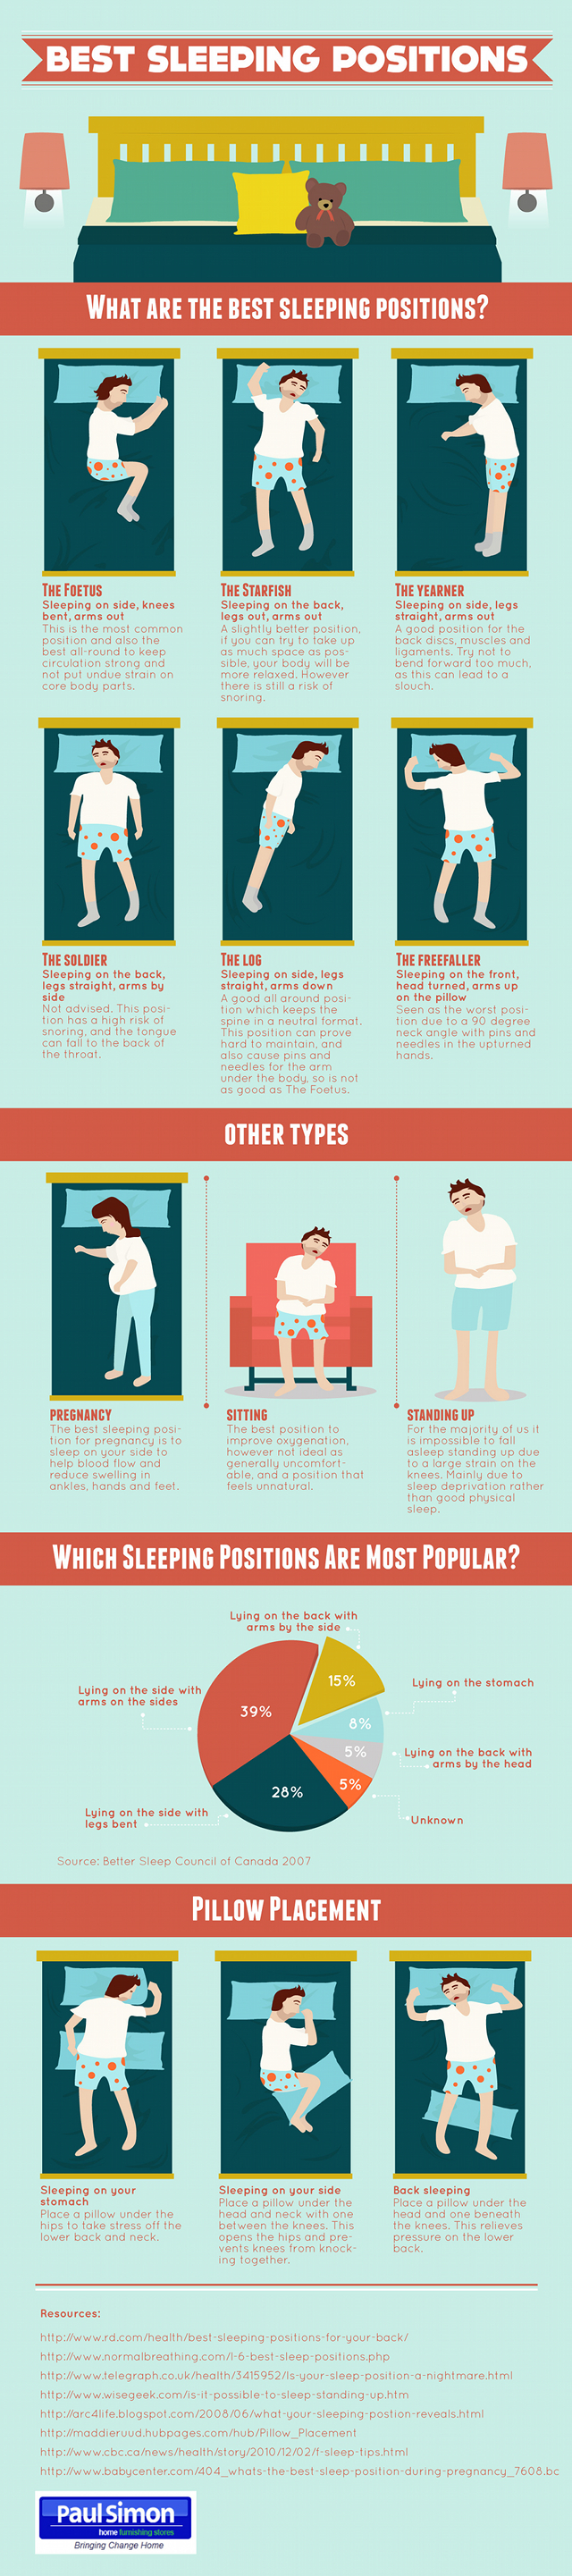 Best Sleeping Positions - infographic